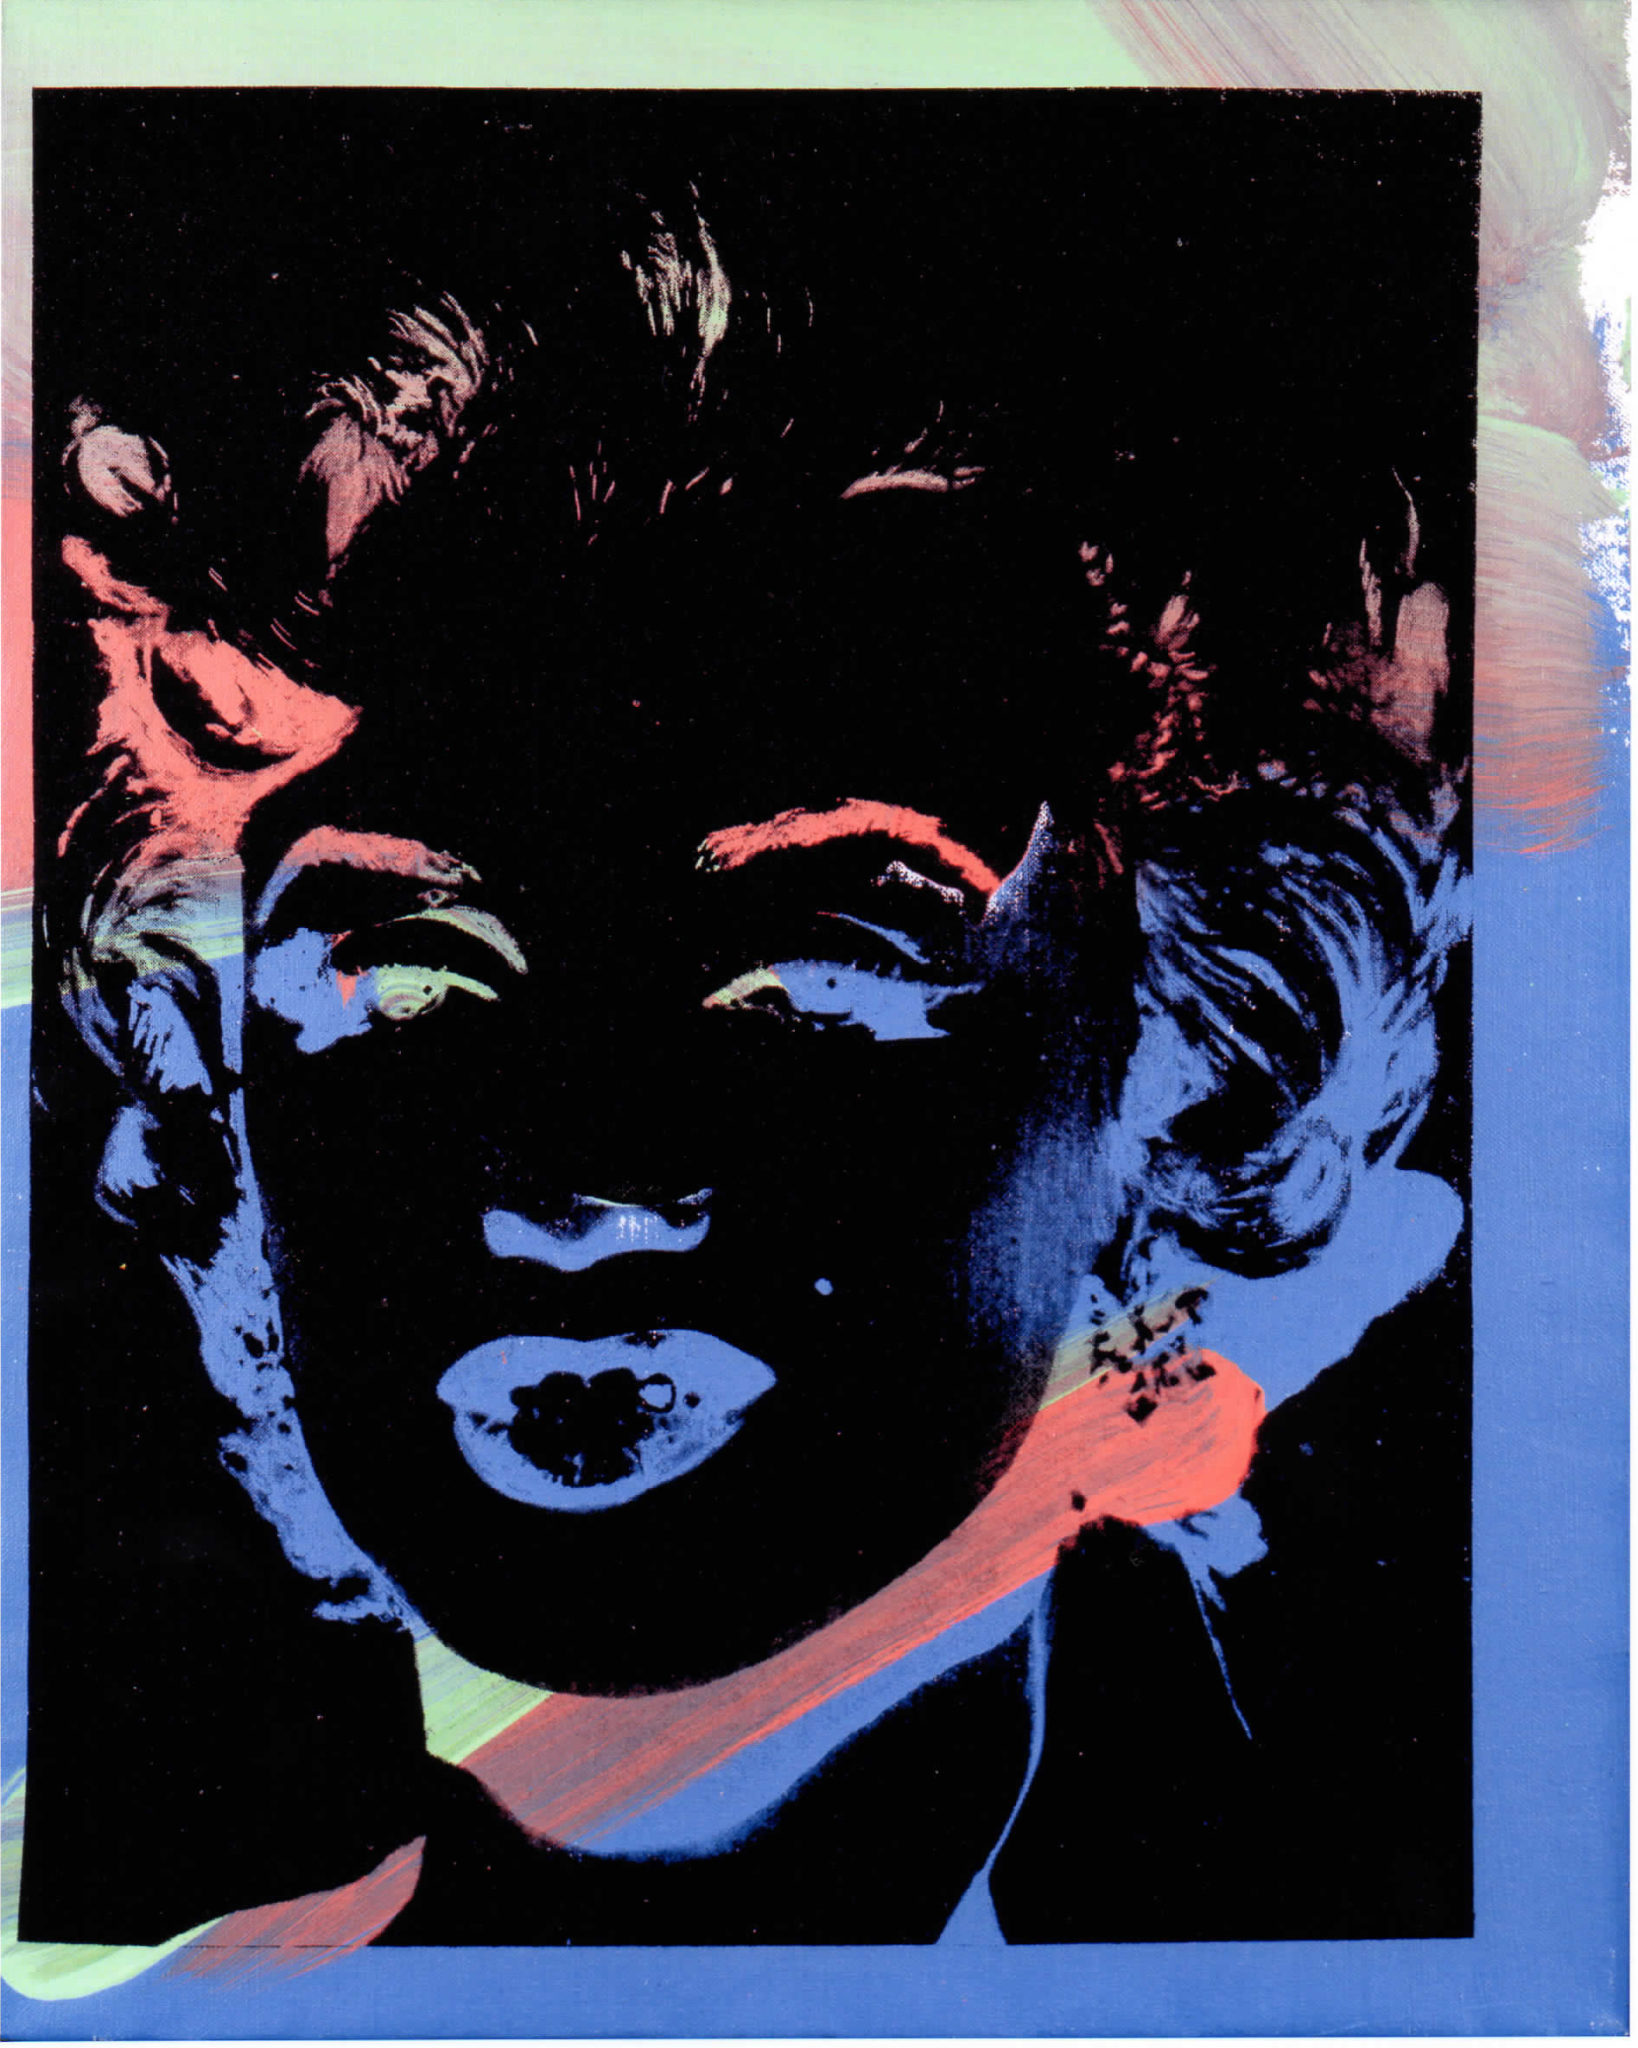 Andy Warhol One Multicoloured Marilyn (Reversal Series) 1979-1986 Acrilico, polimeri sintetici e serigrafia su tela, 50,8x40,7 cm Courtesy: Collezione privata (VR) © The Andy Warhol Foundation for the Visual Arts Inc. by SIAE 2016